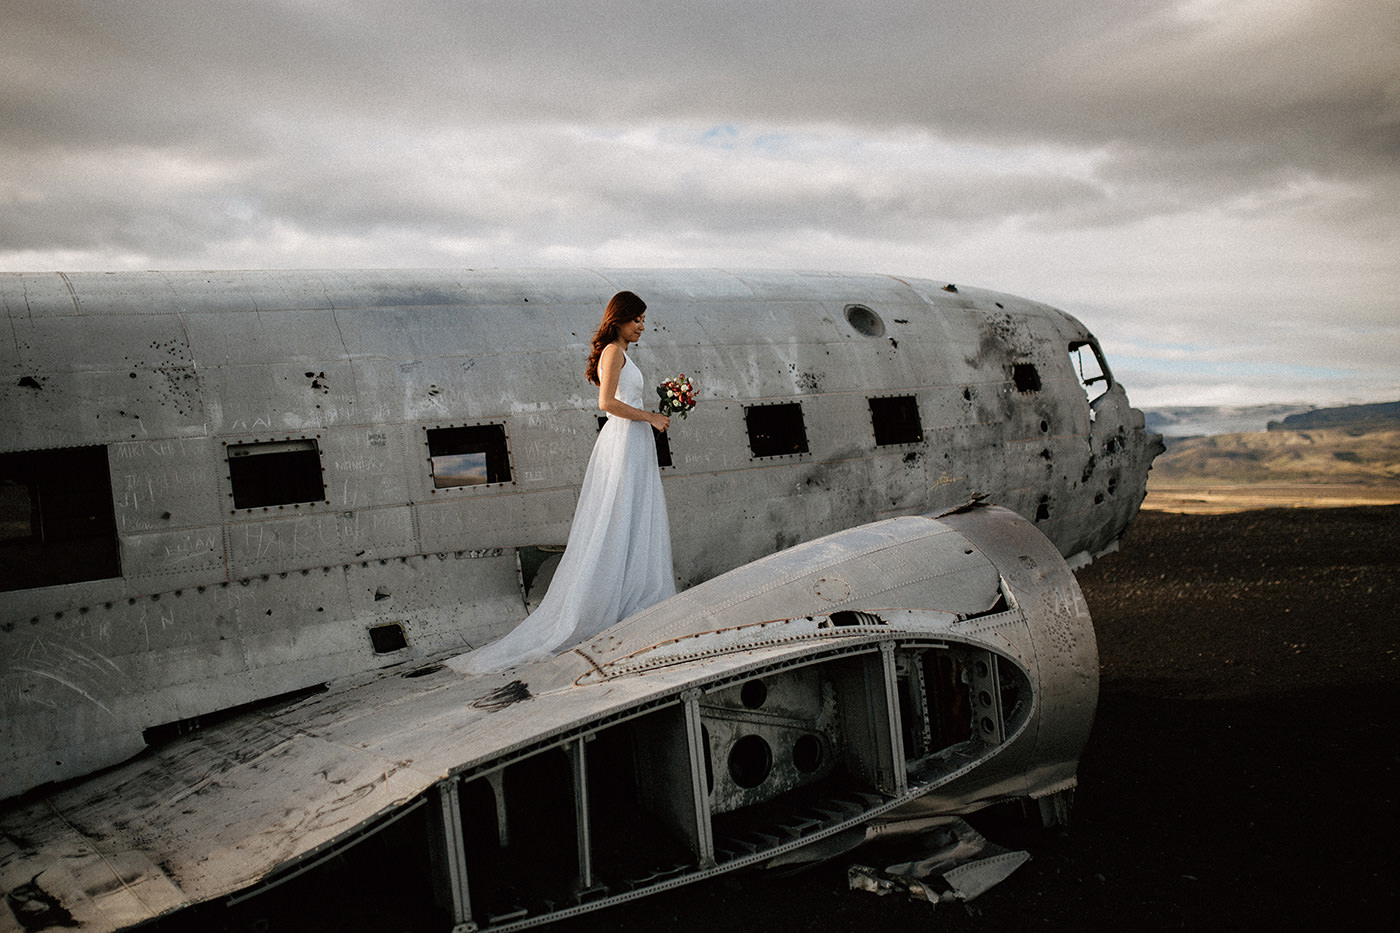 Iceland wrecked plane Sólheimasandur wedding elopement